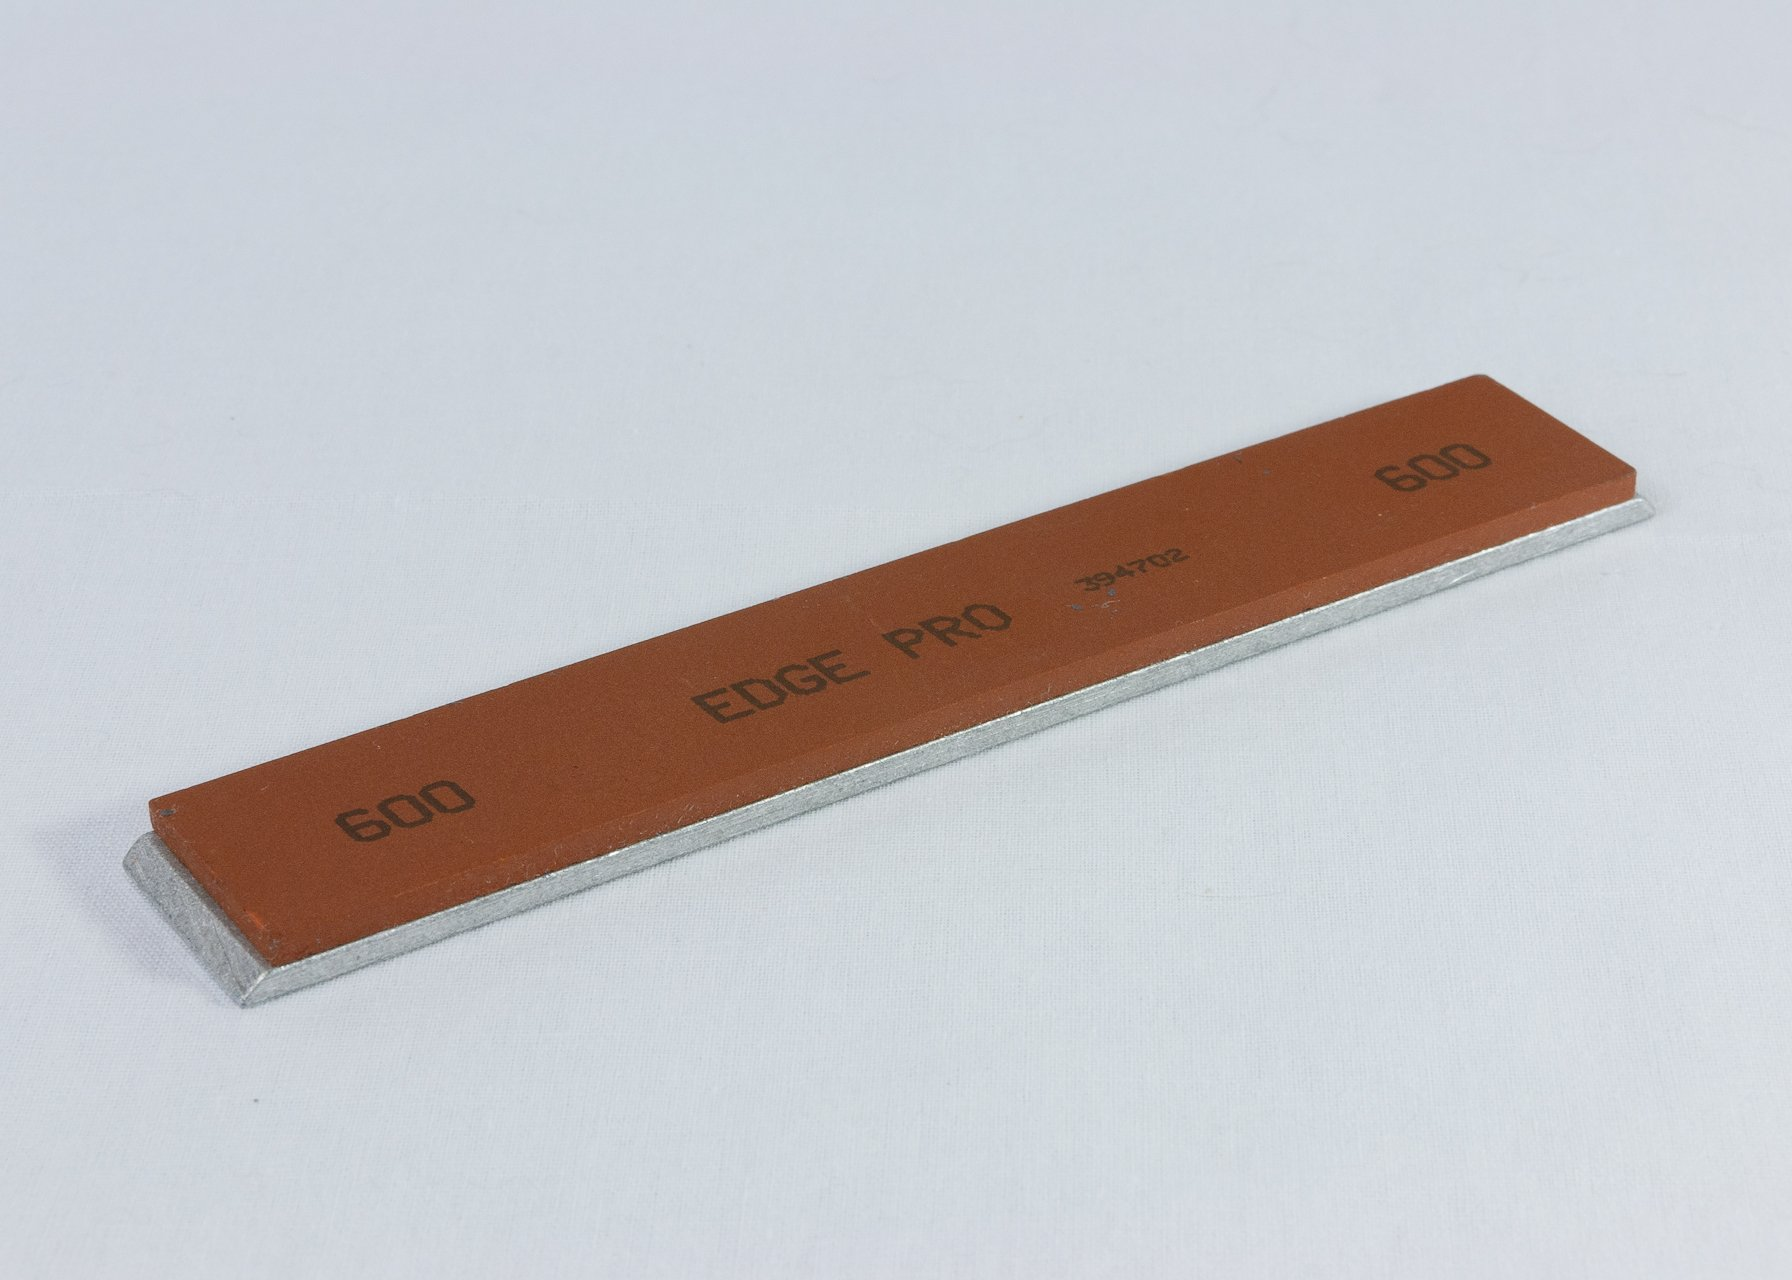 Edge Pro 600 Grit Exra-Fine Water Stone Mounted